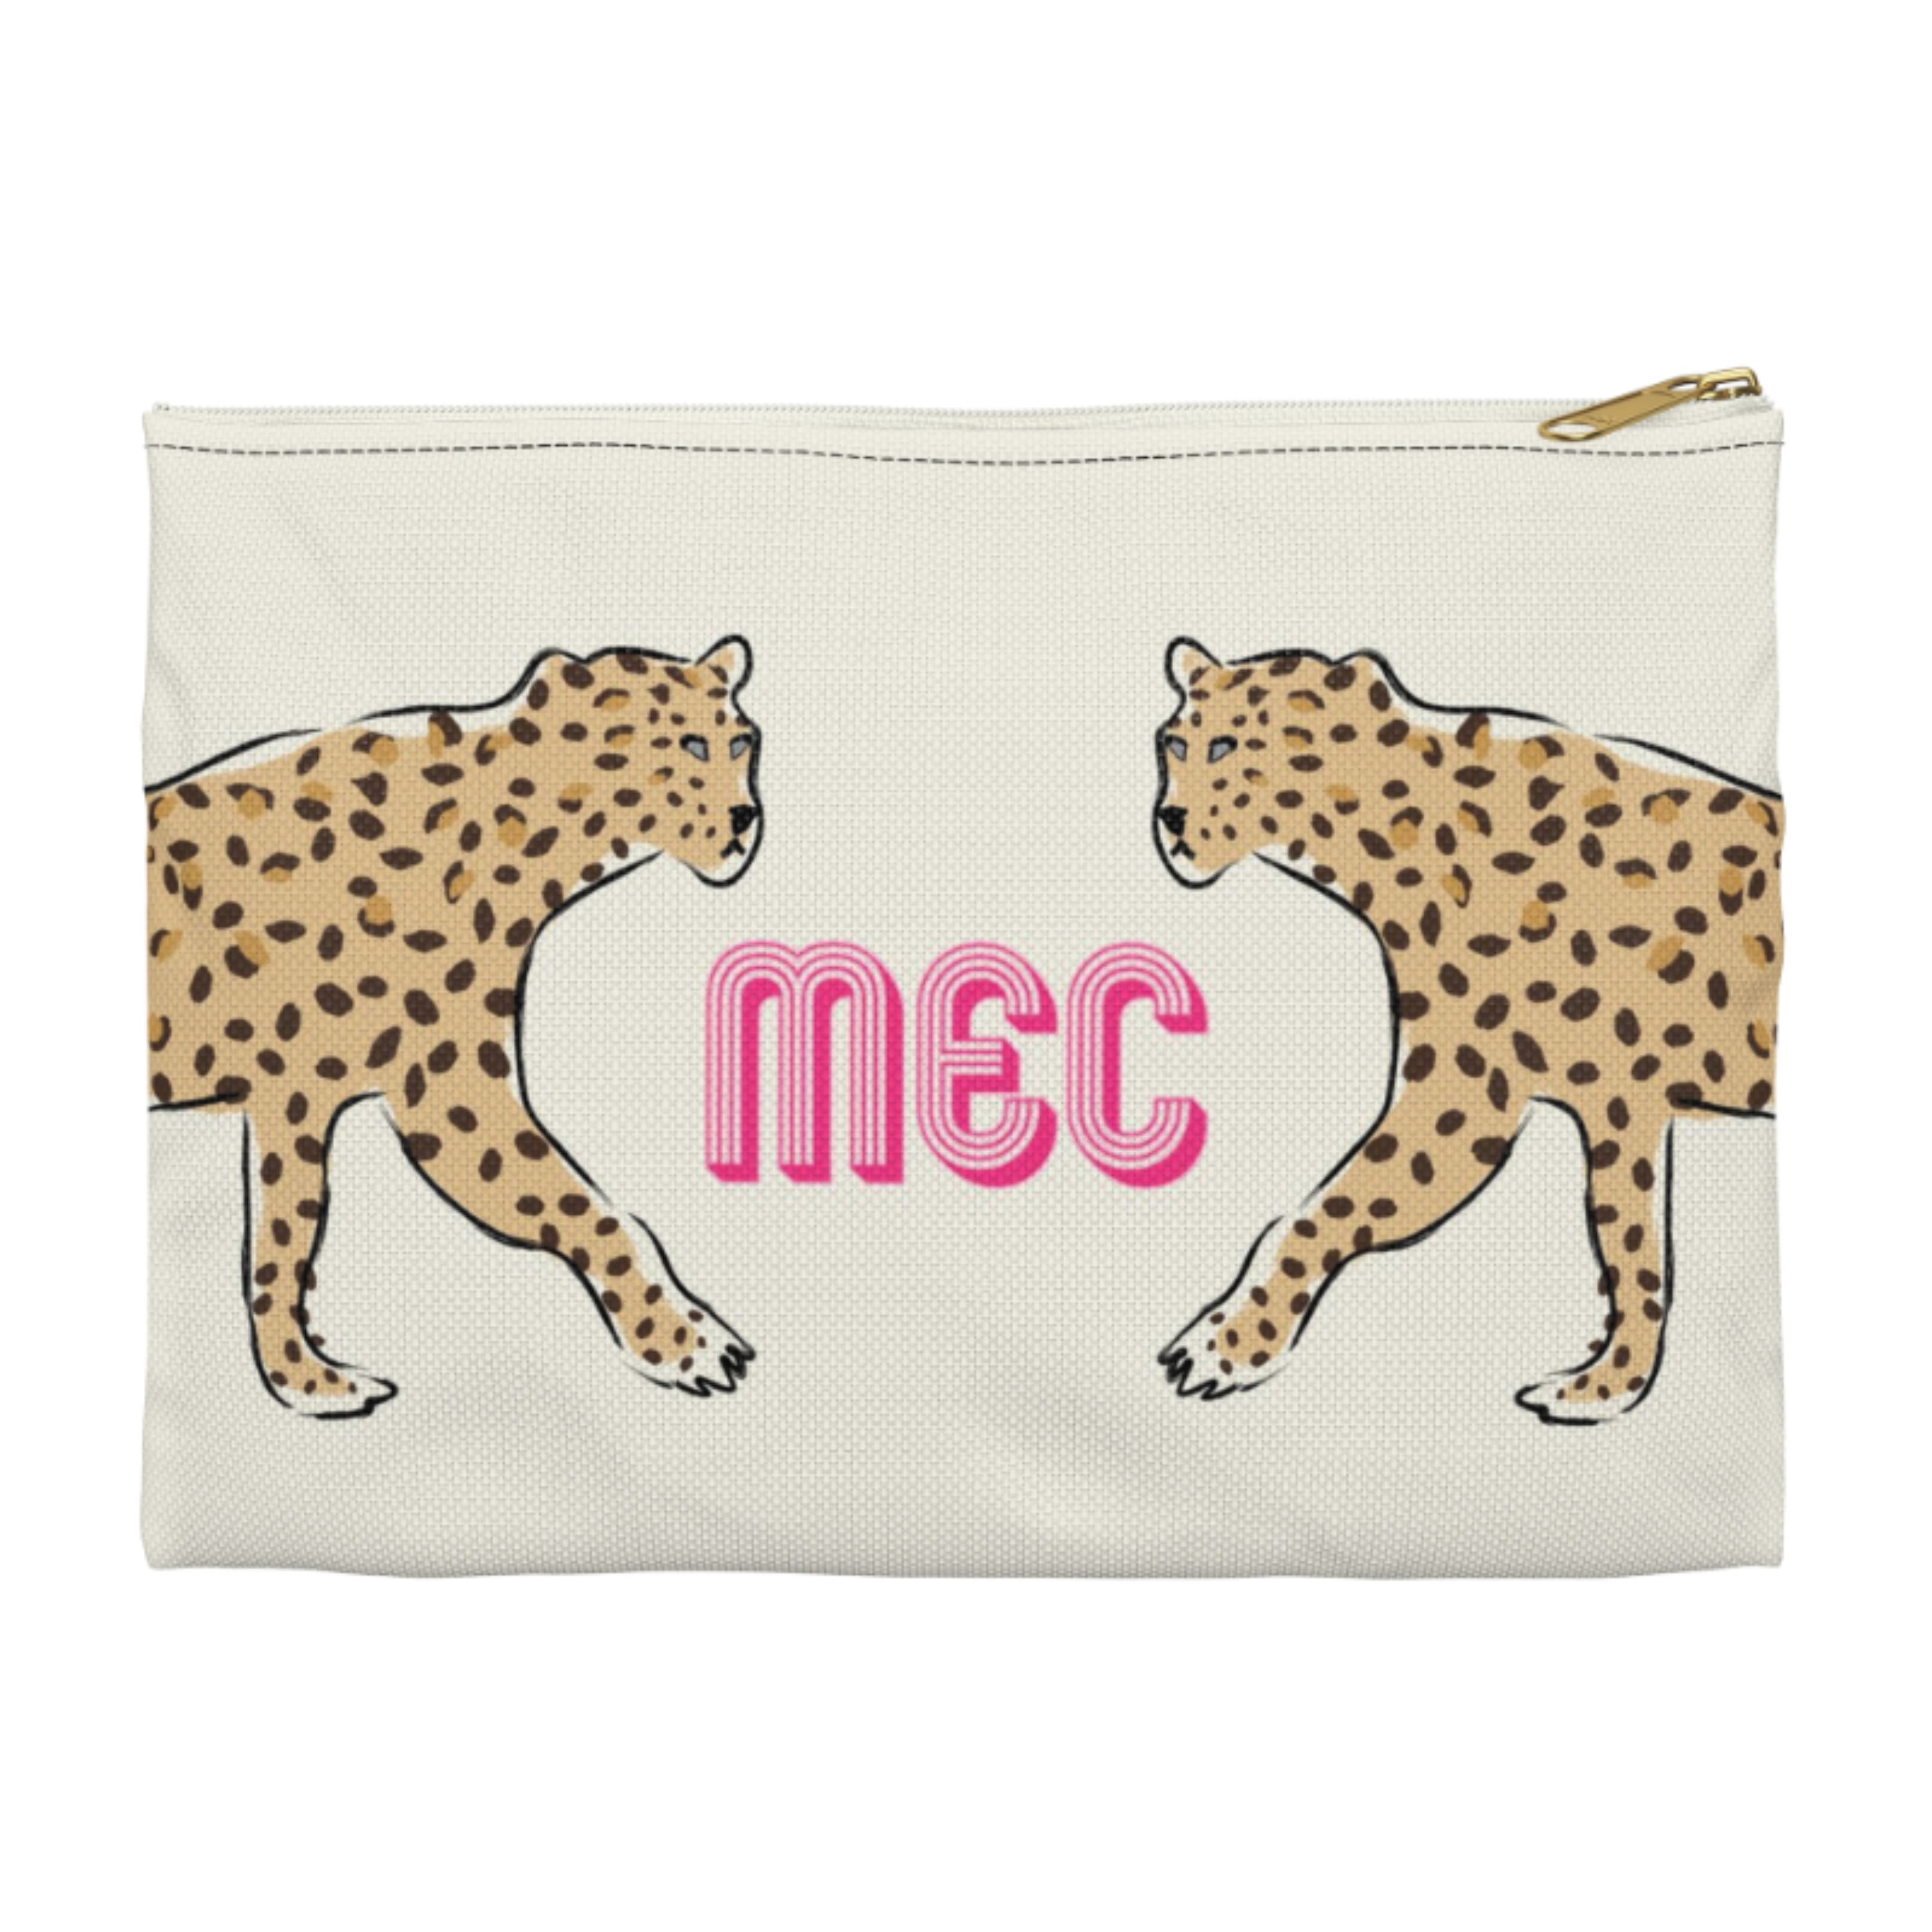 Monogrammed Leopard Duo Clutch - 2 sizes Available